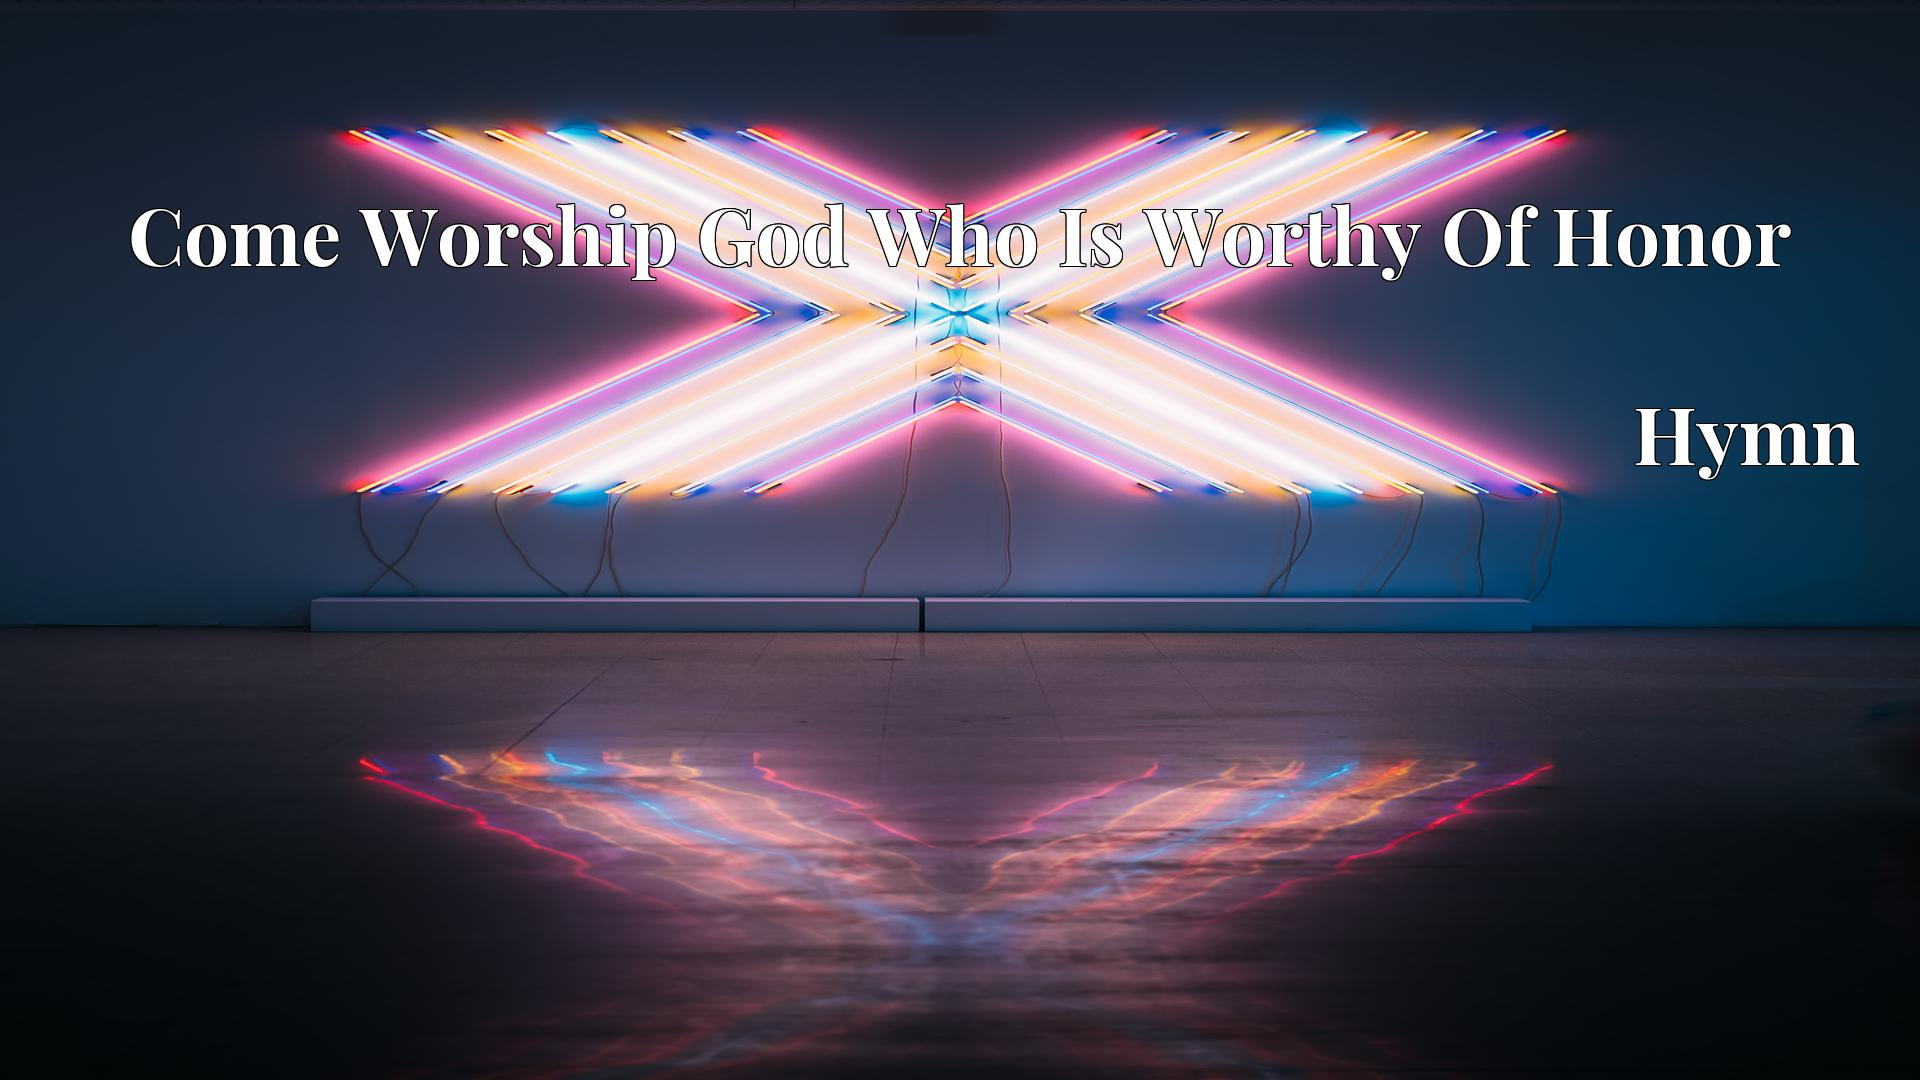 Come Worship God Who Is Worthy Of Honor - Hymn